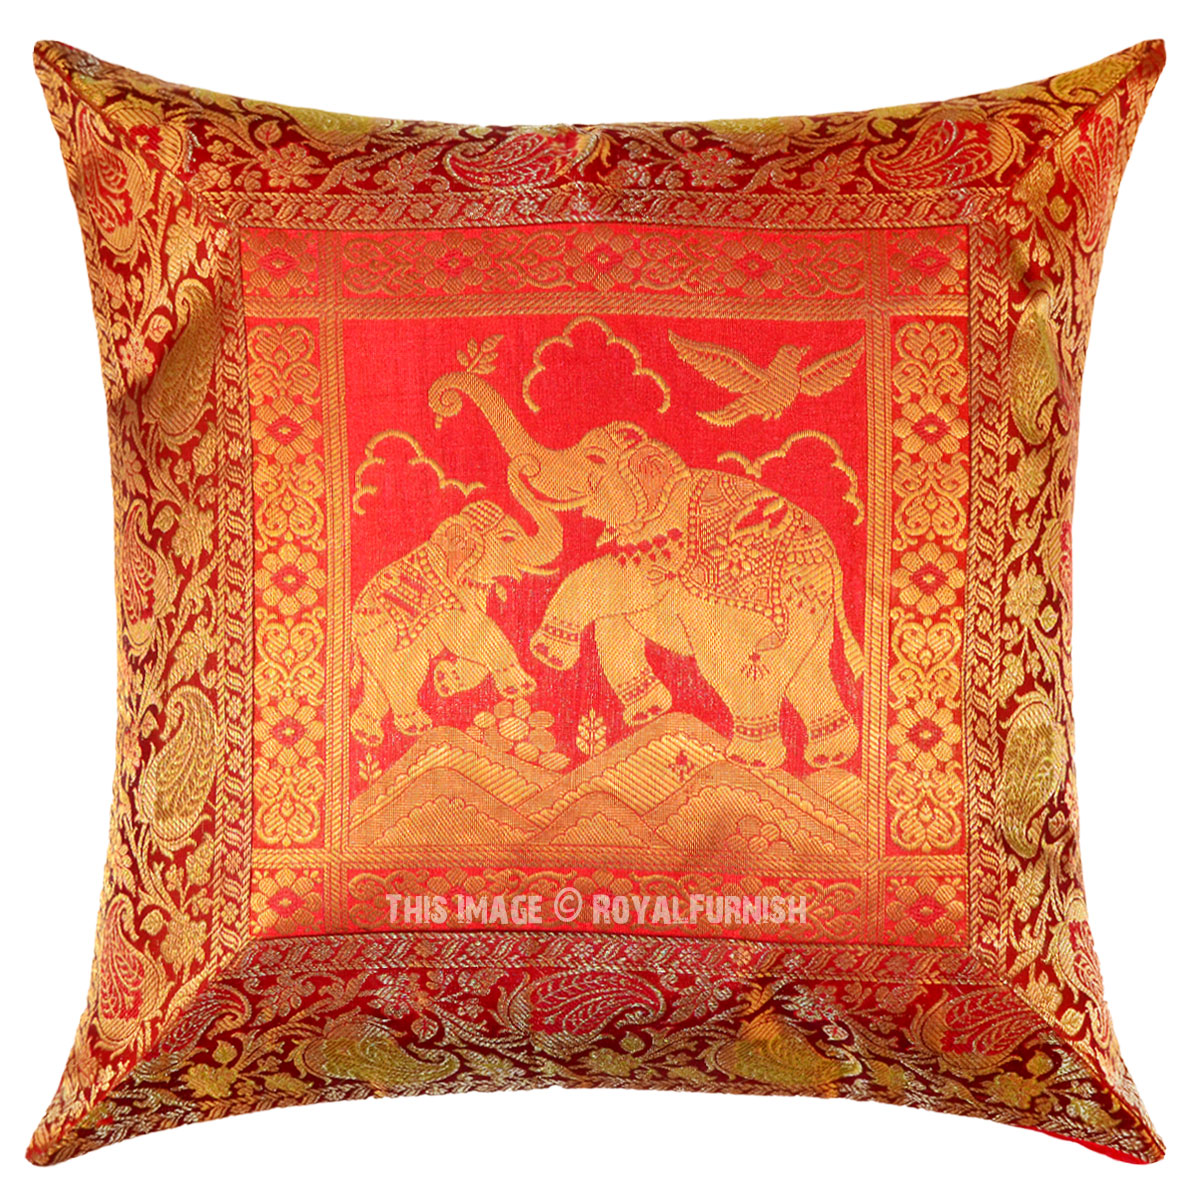 Red Silk Decorative Pillows : Red Elephants Motherhood Featuring Decorative Silk Pillow Cover 16X16 Inch - RoyalFurnish.com